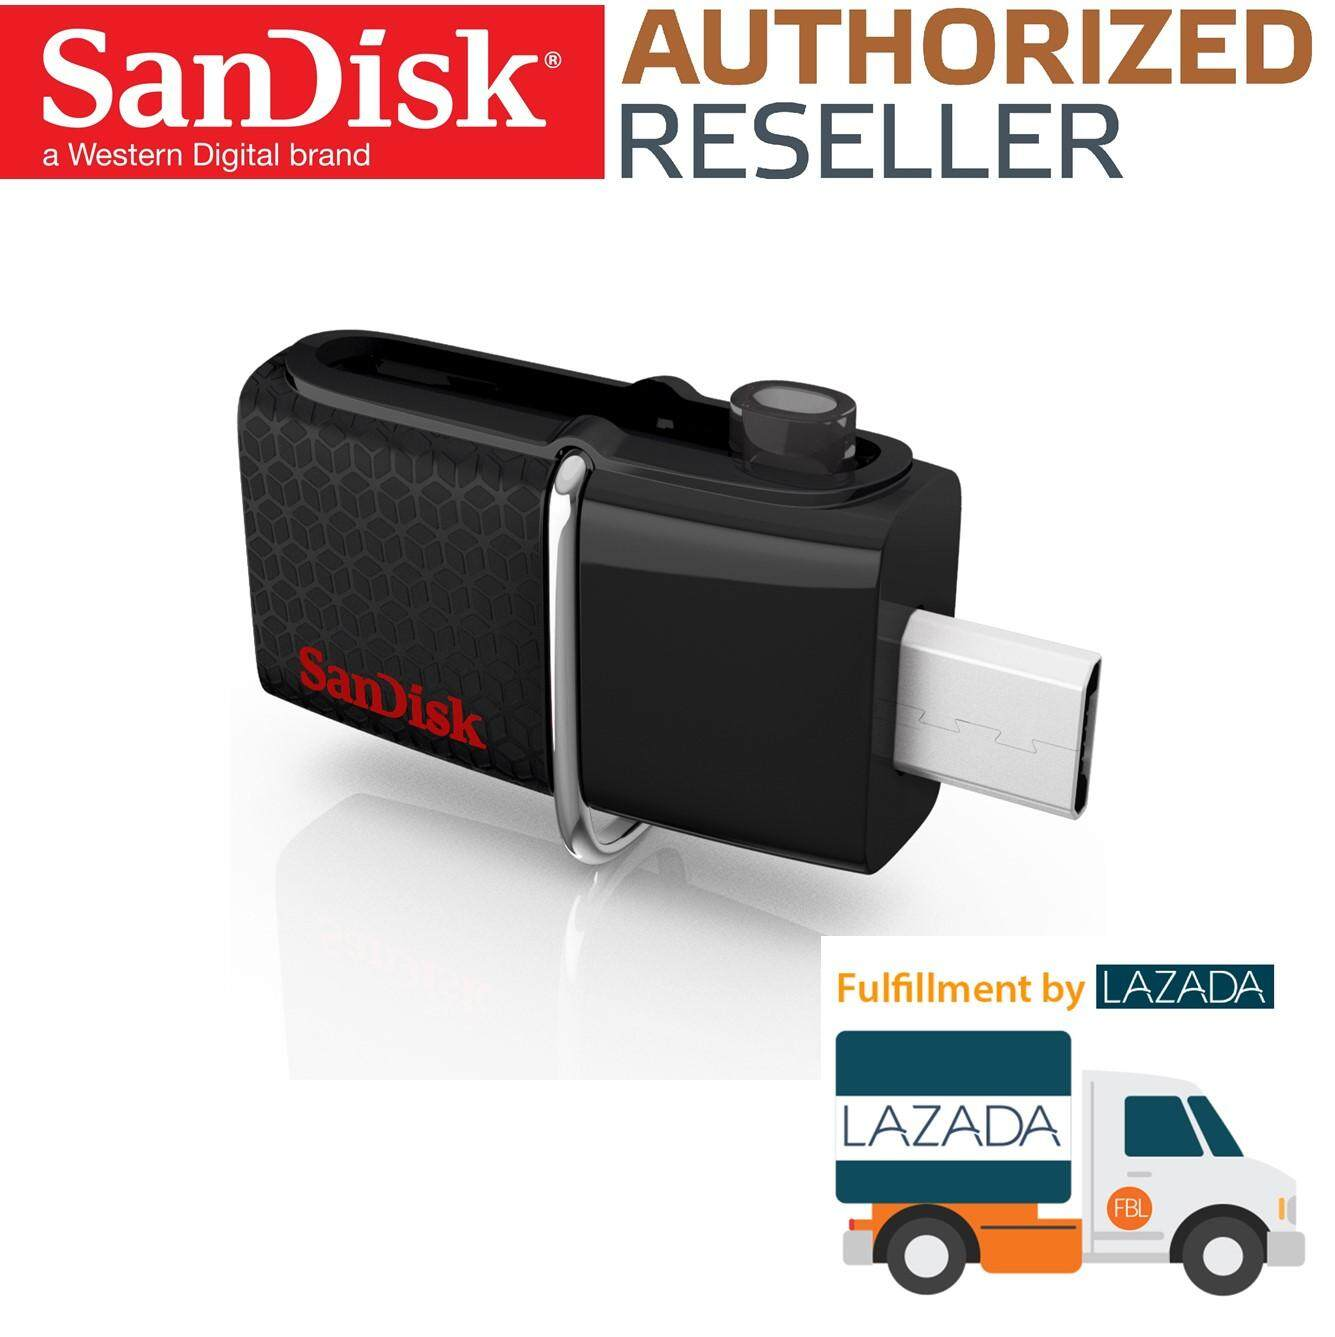 Sandisk Ultra Dual Usb 30 Price Online In Malaysia October 2018 Original 32gb Flash Drive Flair Cz73